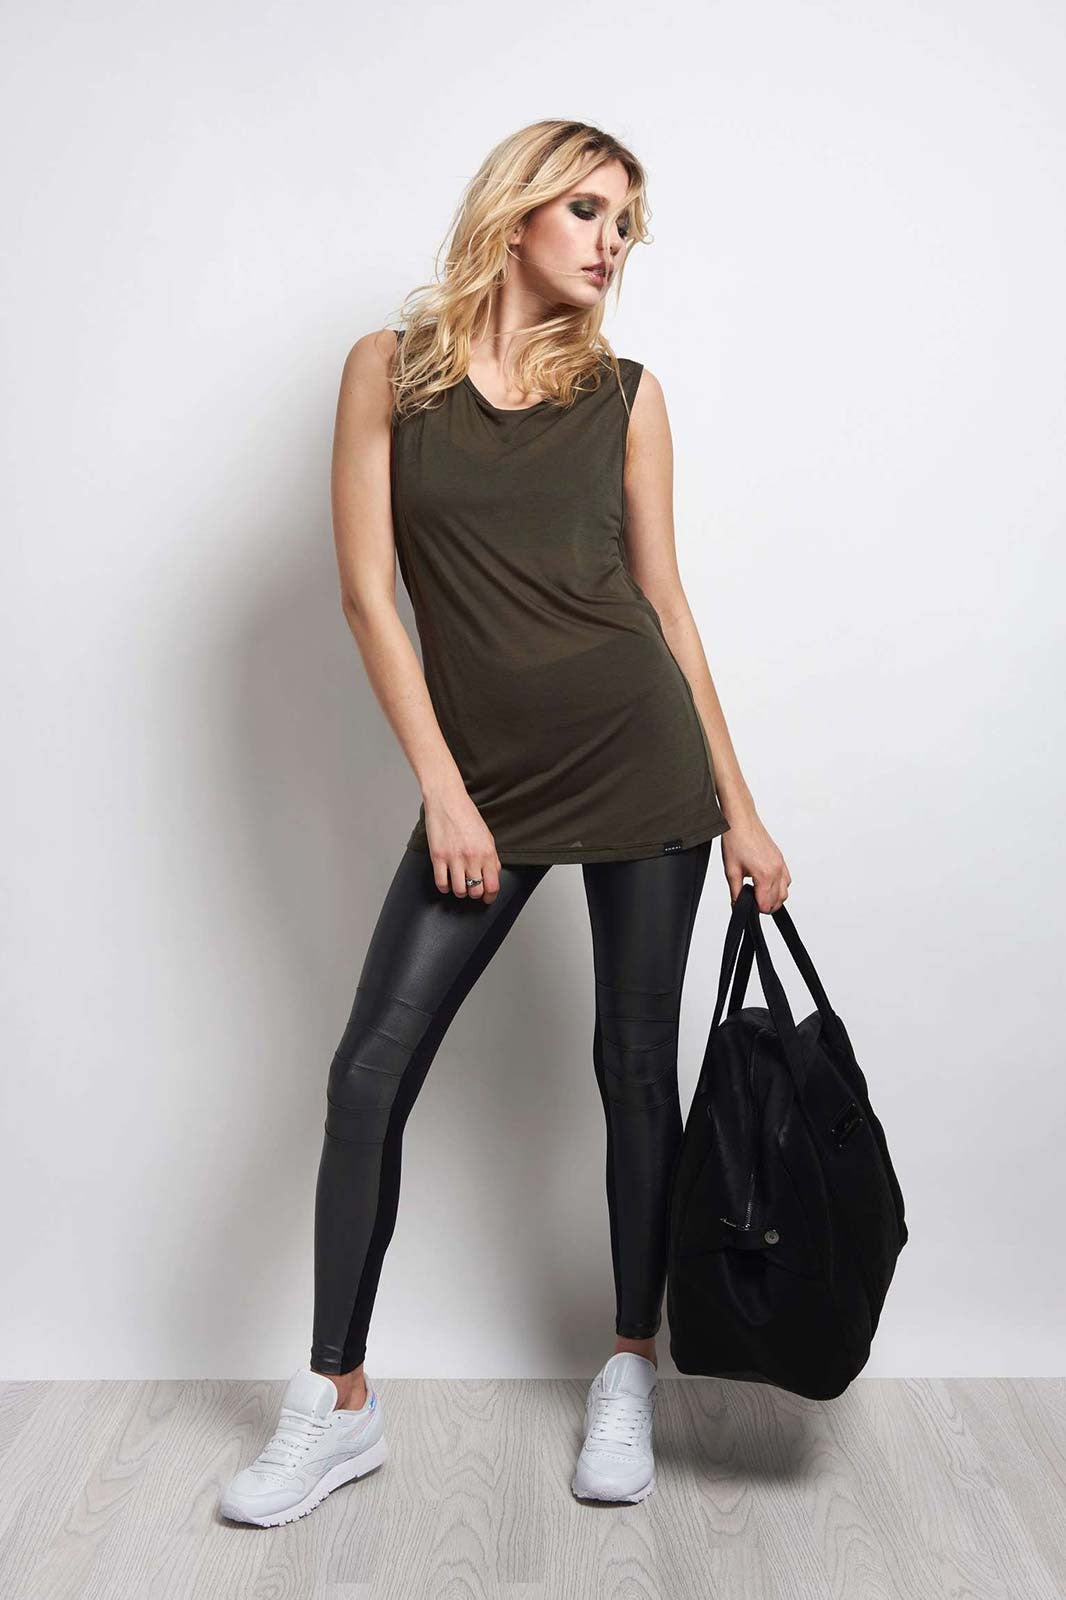 Koral Aura Sleeveless Top - Military Green image 4 - The Sports Edit